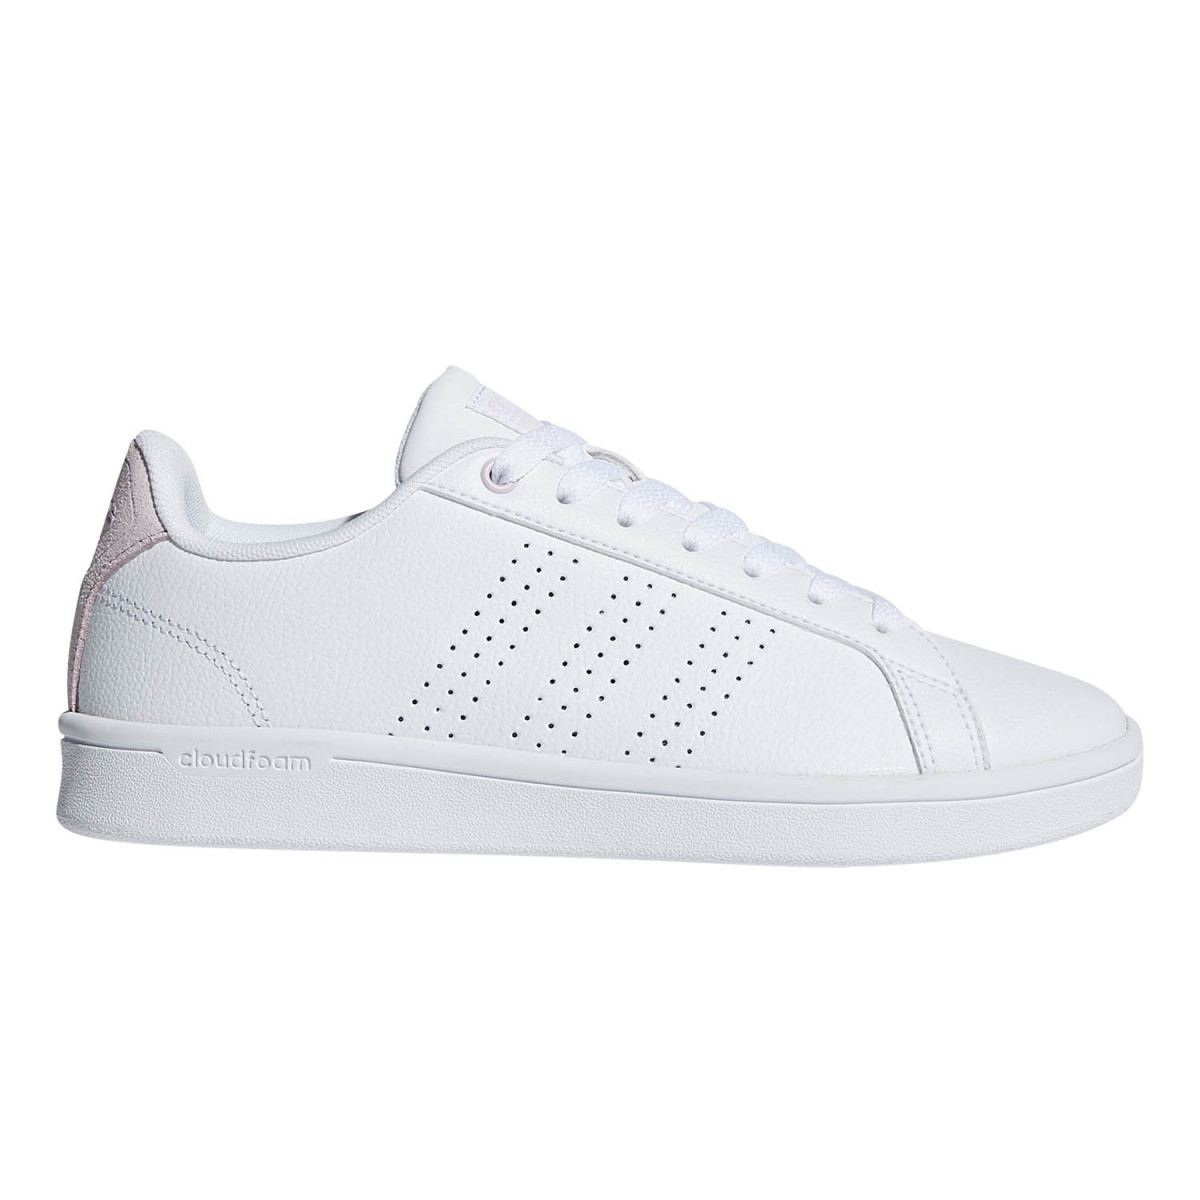 fa5a7bacd697e Zapatillas Adidas Cloudfoam Advantage Clean